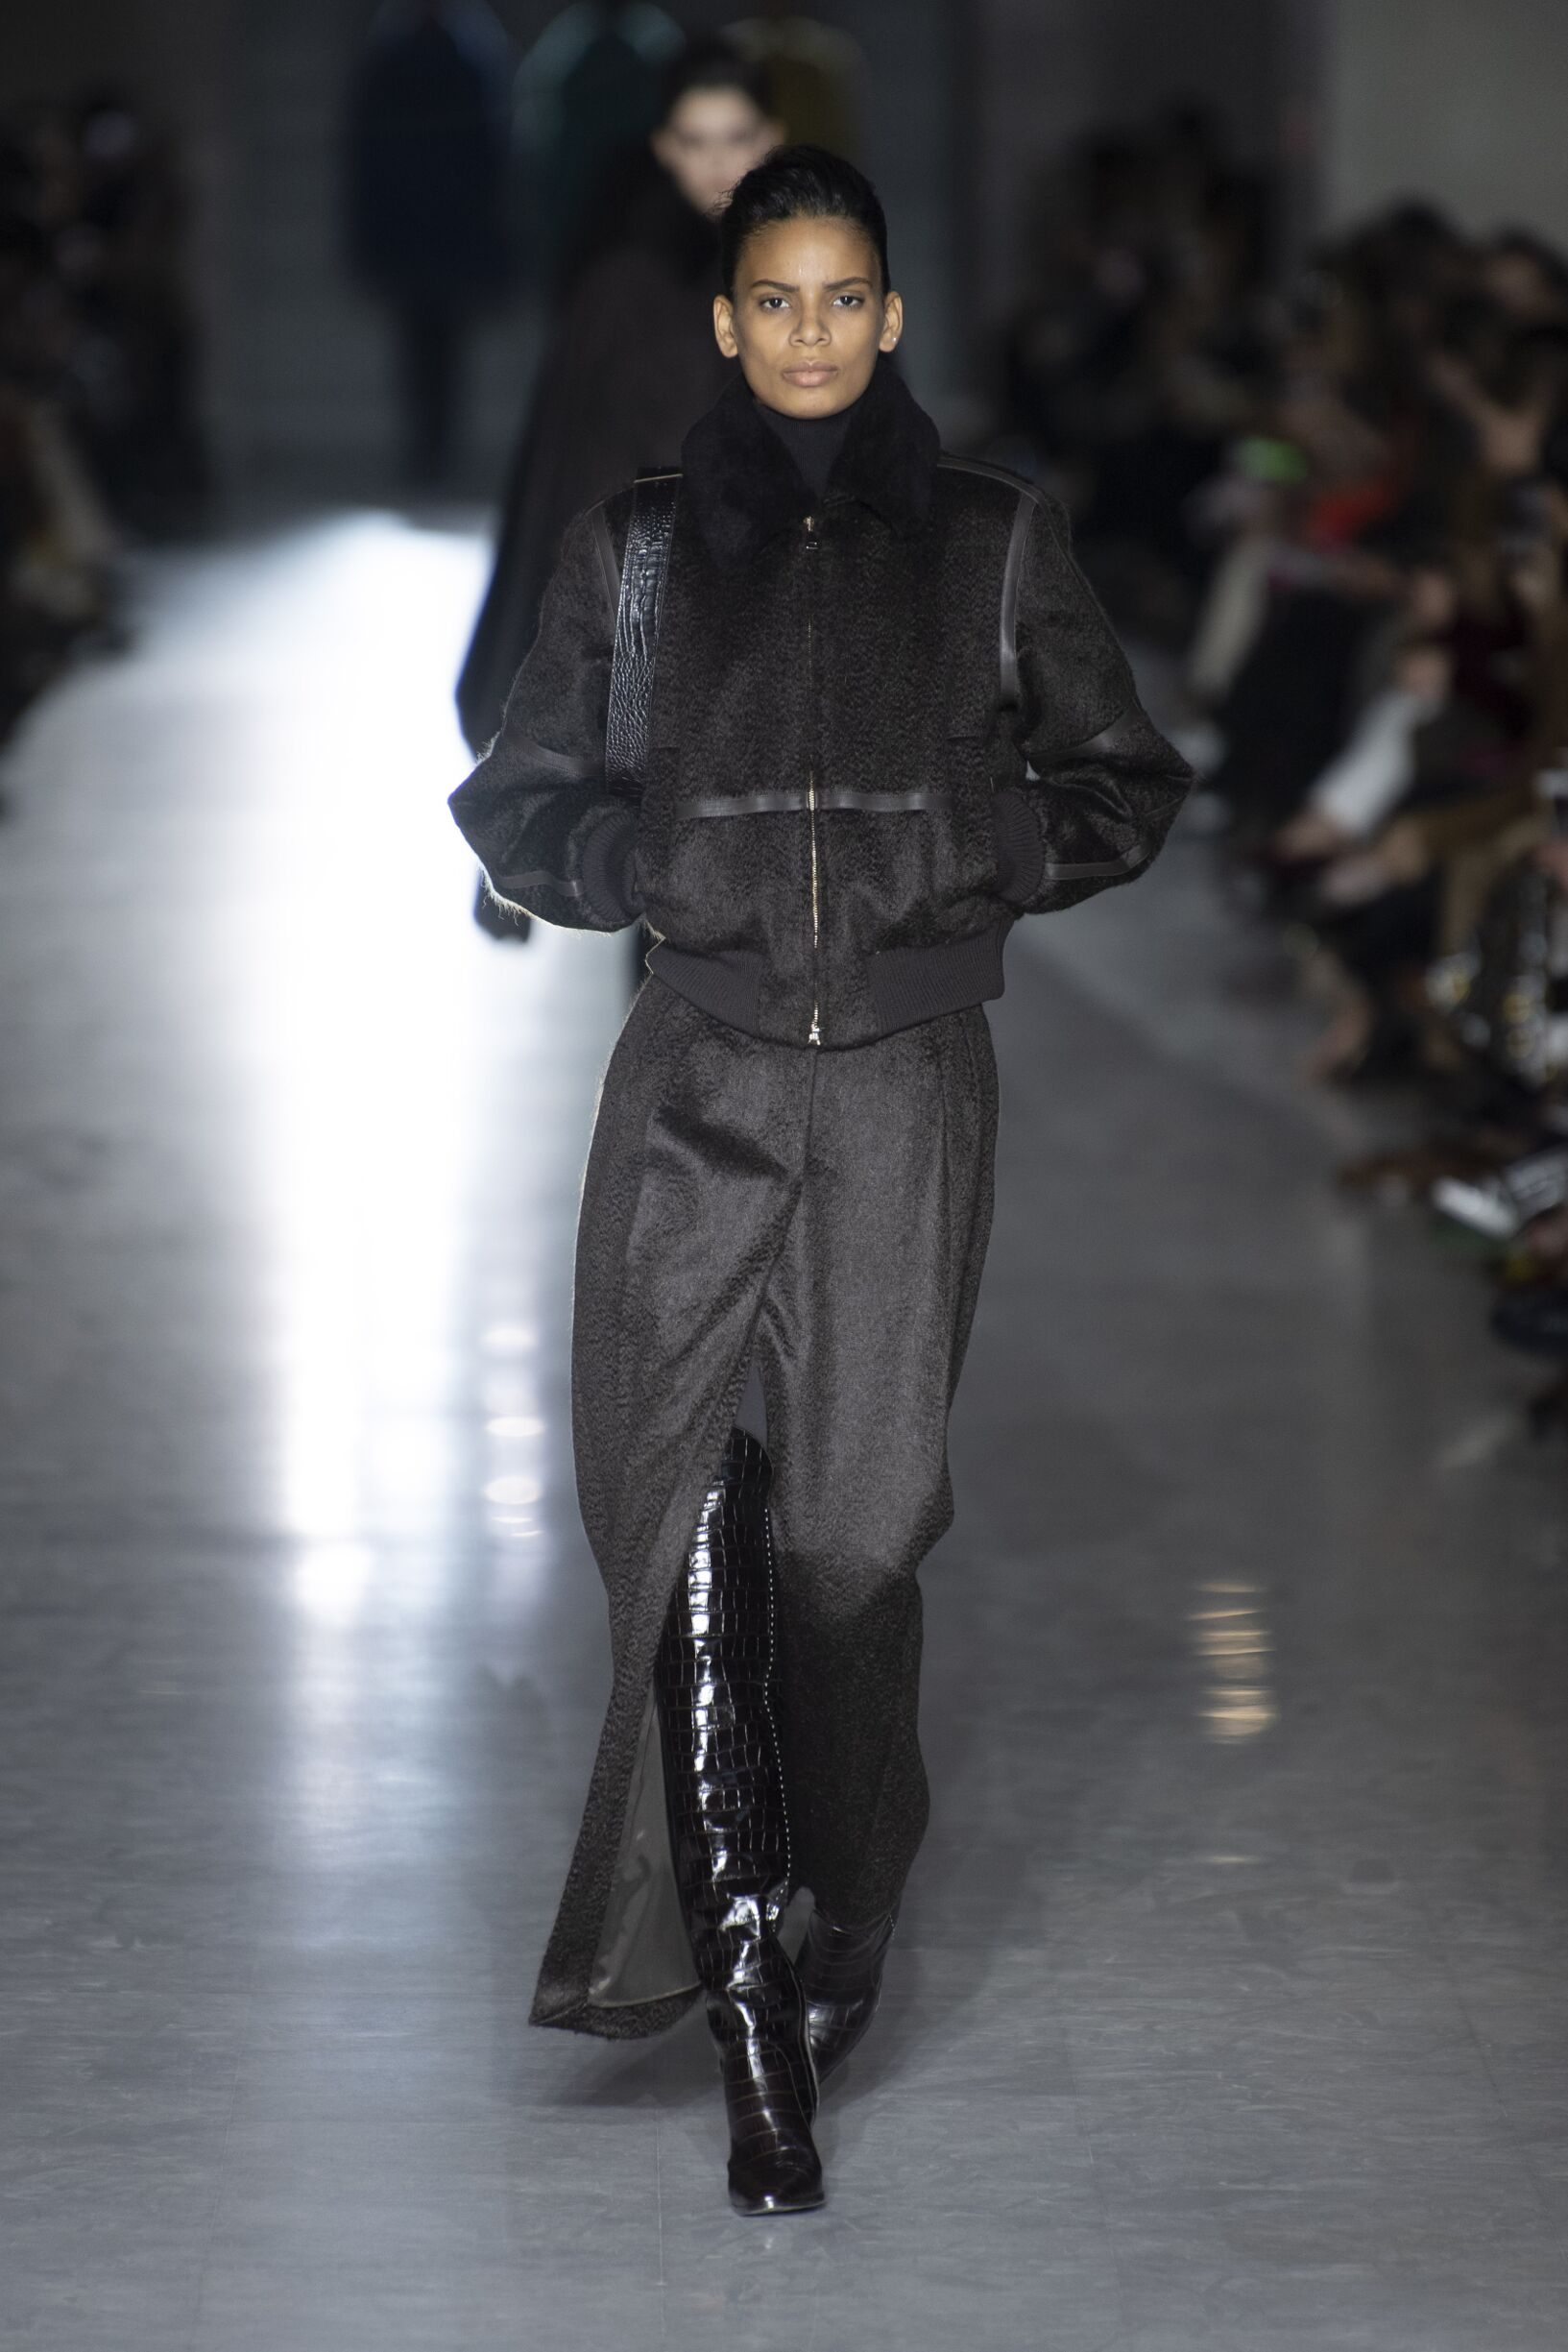 Look Up A Number >> MAX MARA FALL WINTER 2019 WOMEN'S COLLECTION | The Skinny Beep